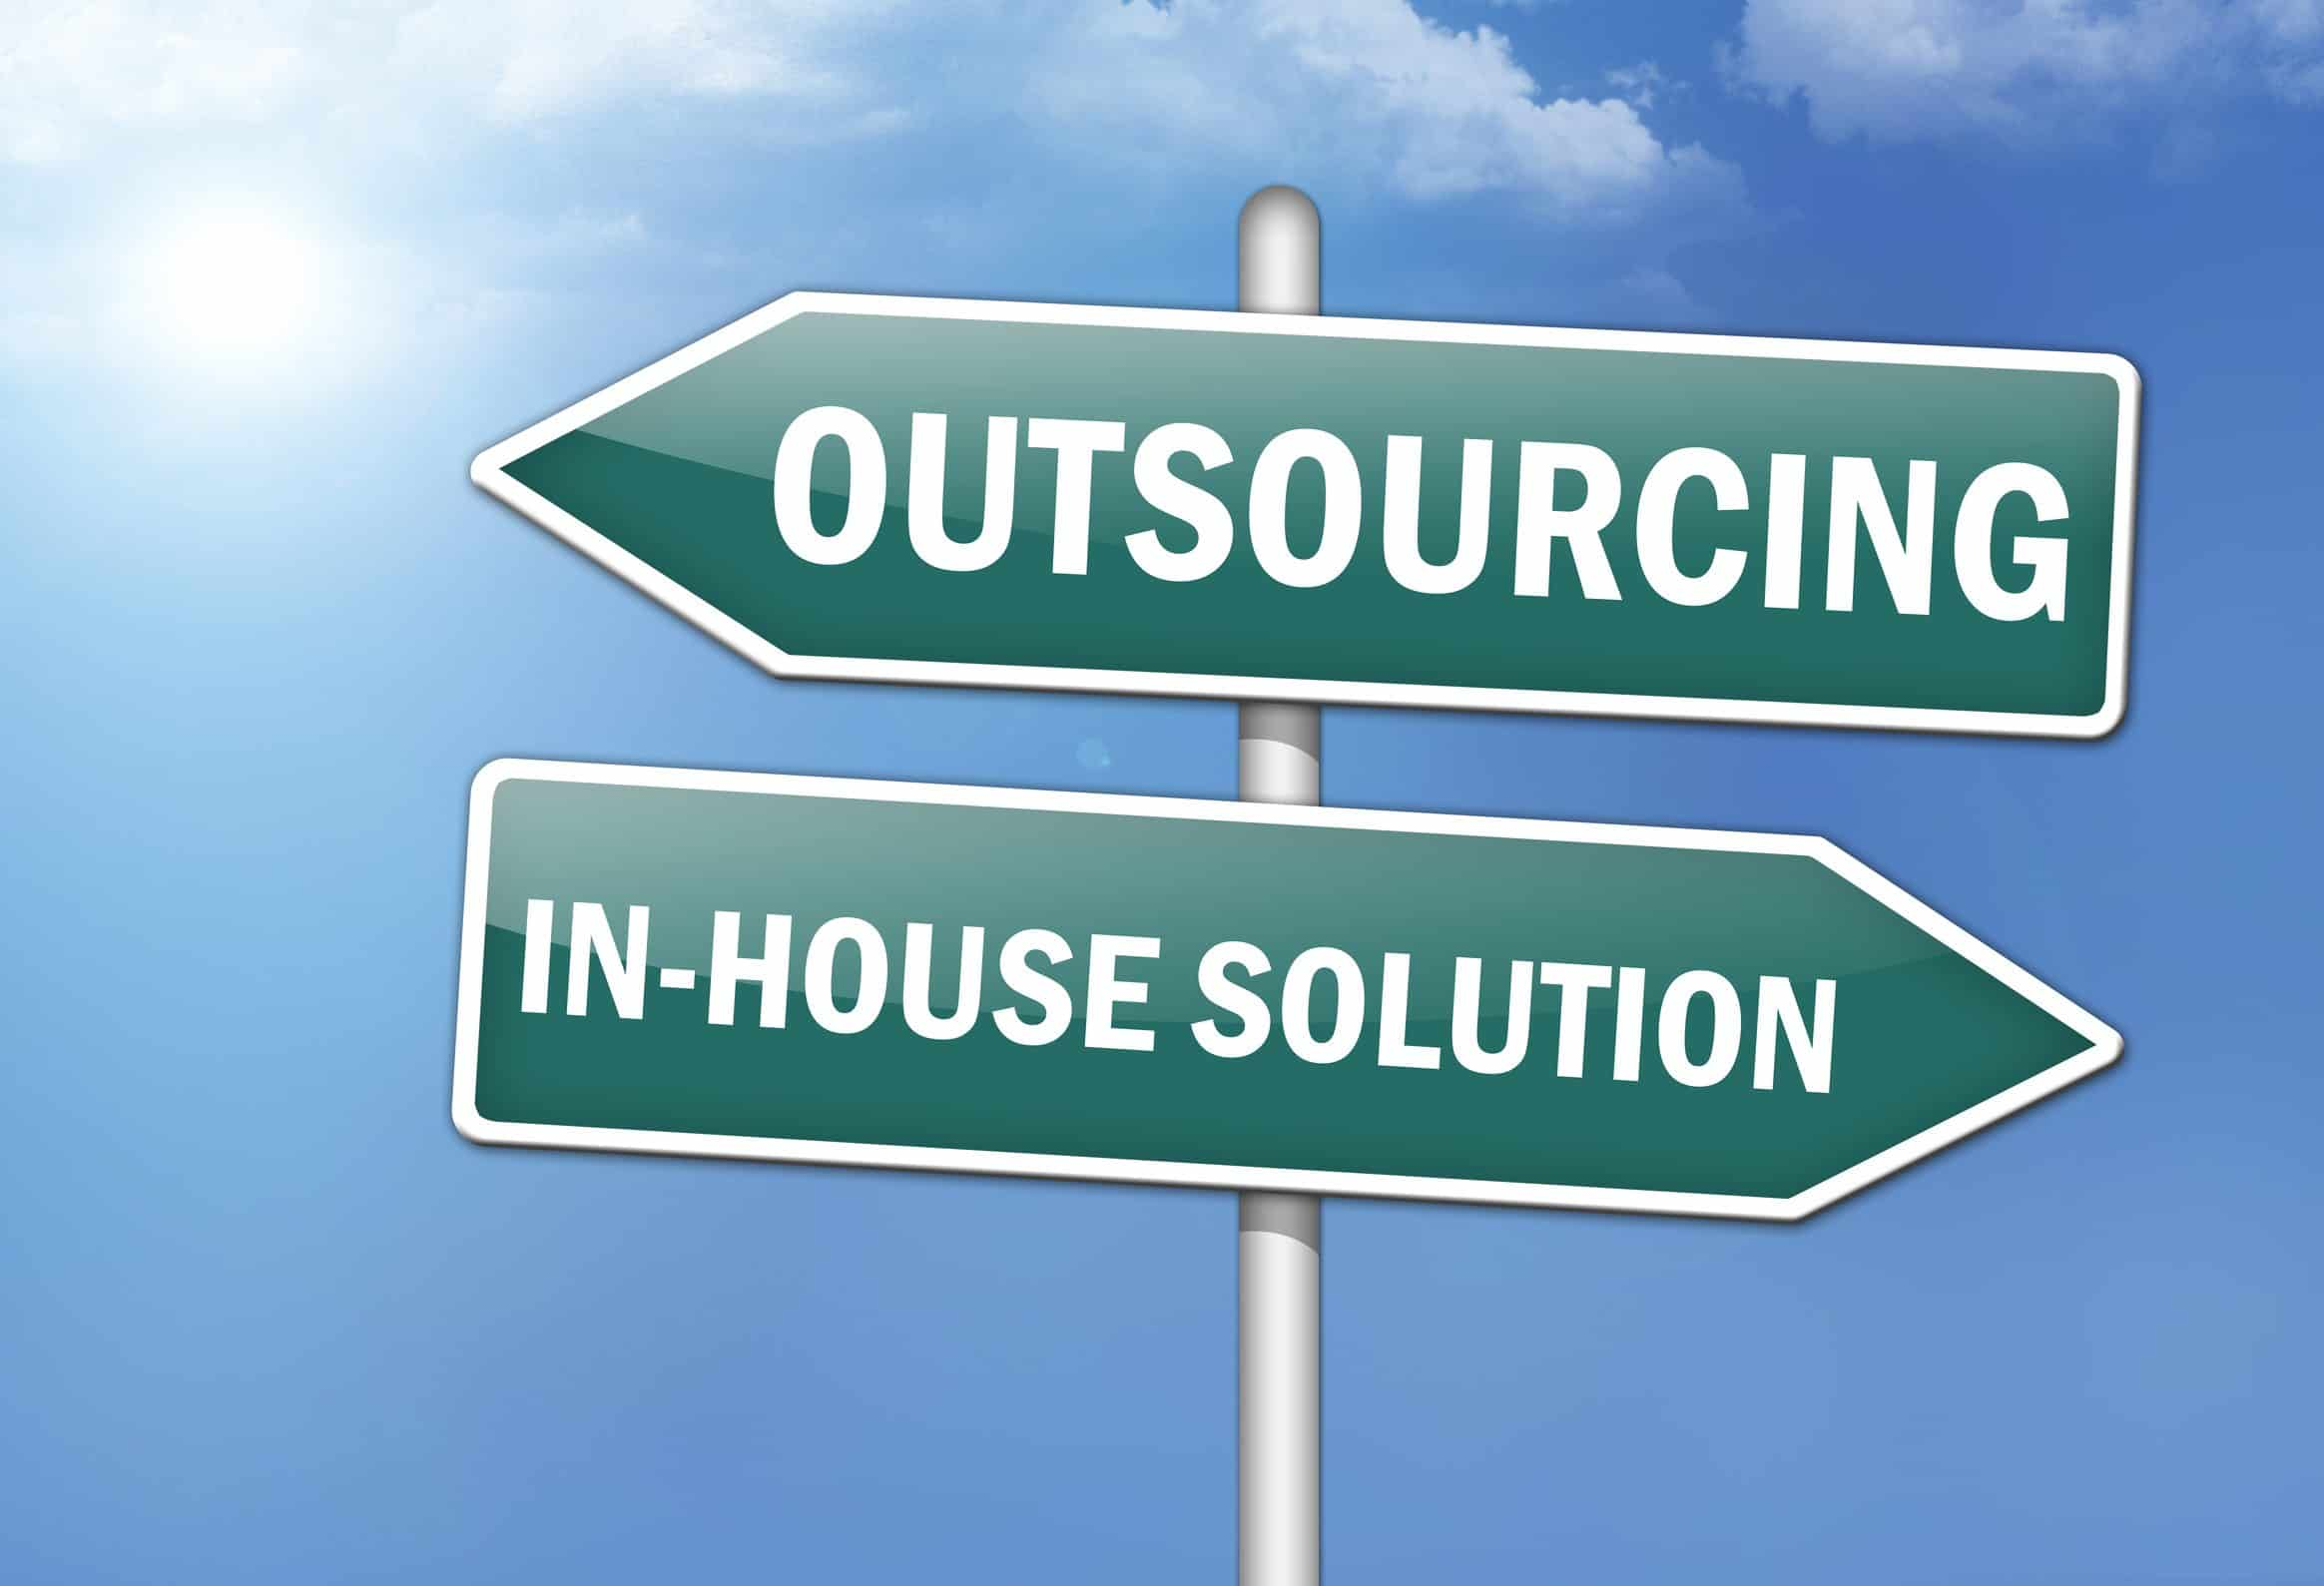 outsourcing-sign.jpg